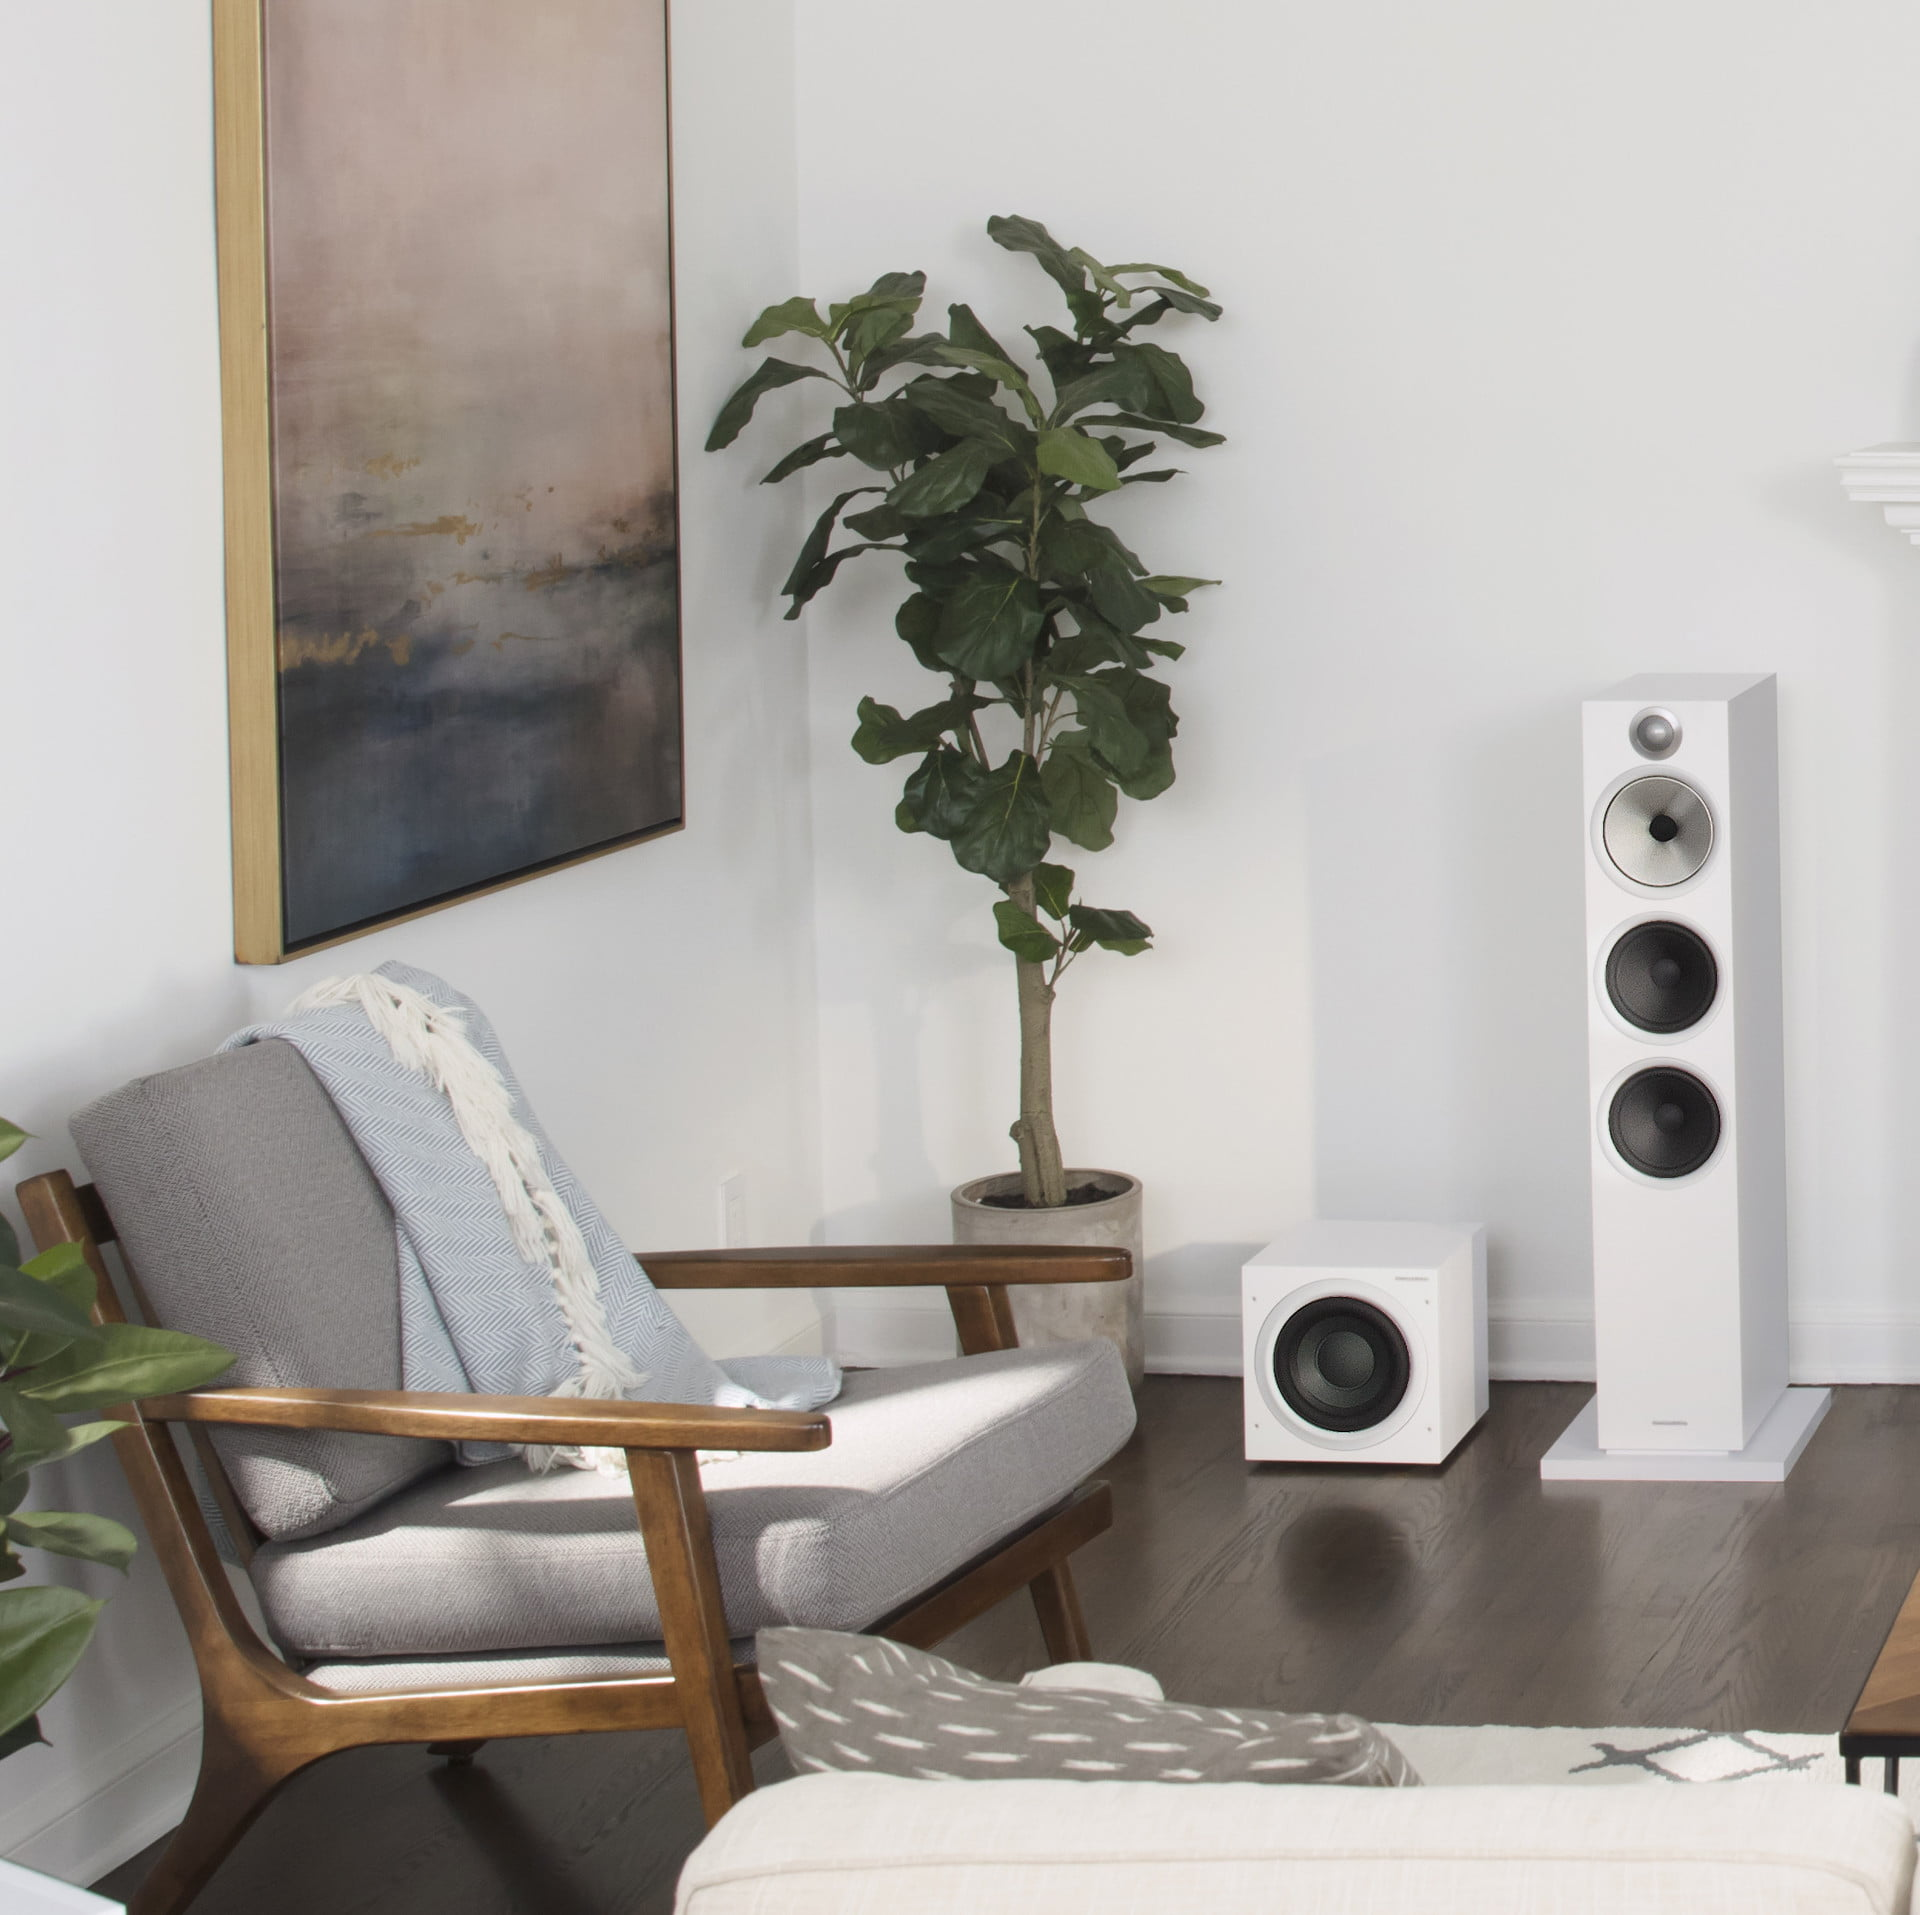 bowers wilkins 39 latest 600 series speakers sound better. Black Bedroom Furniture Sets. Home Design Ideas